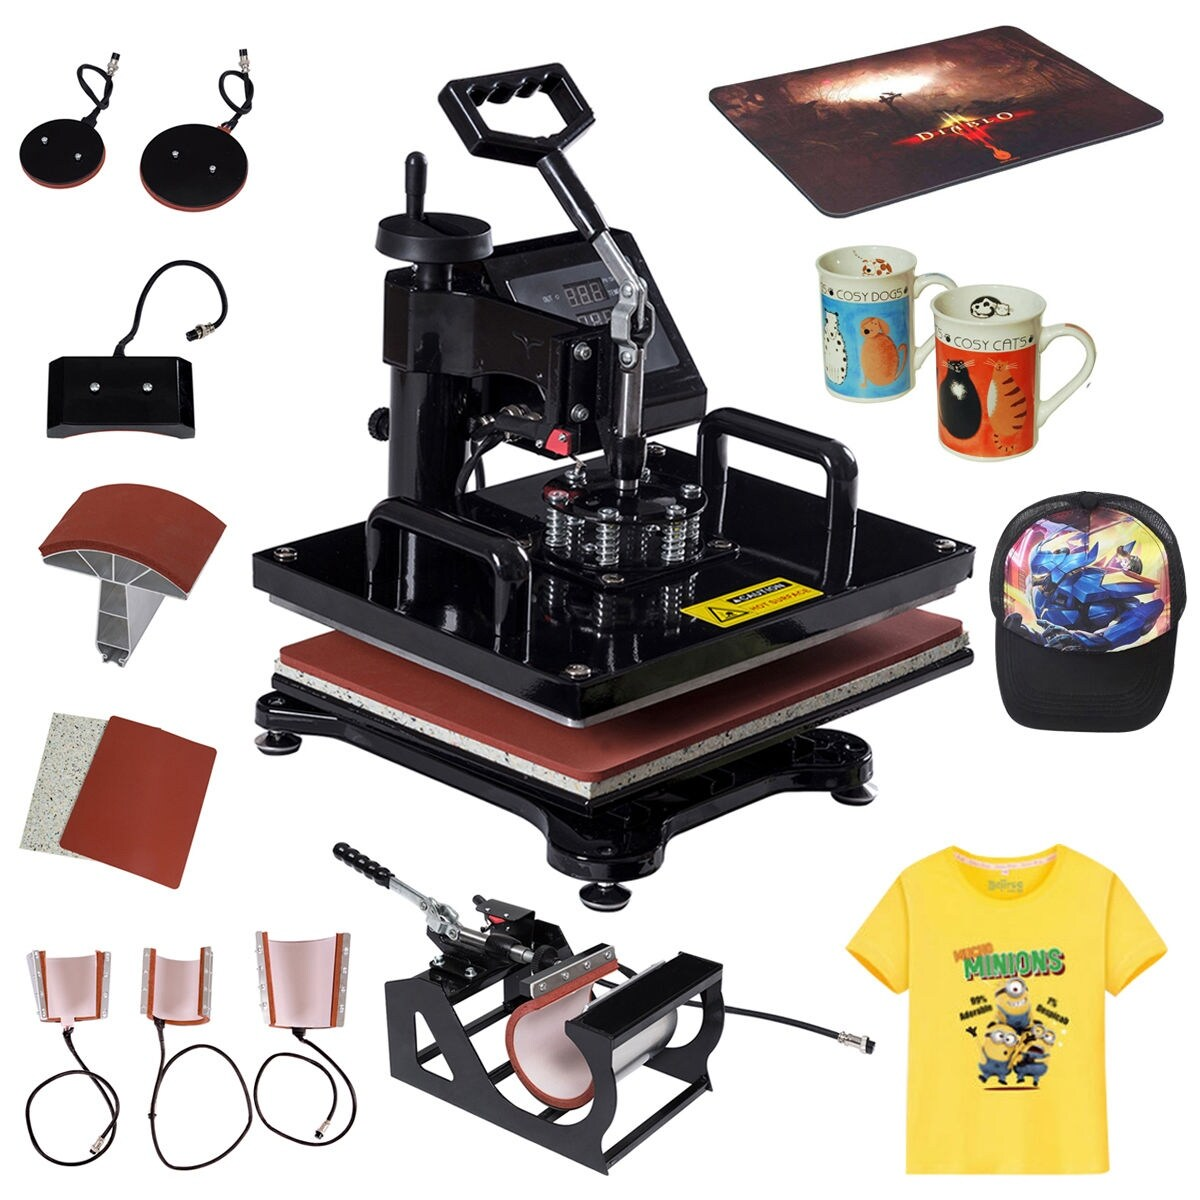 Sublimation Press Costway 8 In 1 Heat Press Machine Digital Transfer Sublimation T Shirt Mug Hat Plate Cap Black